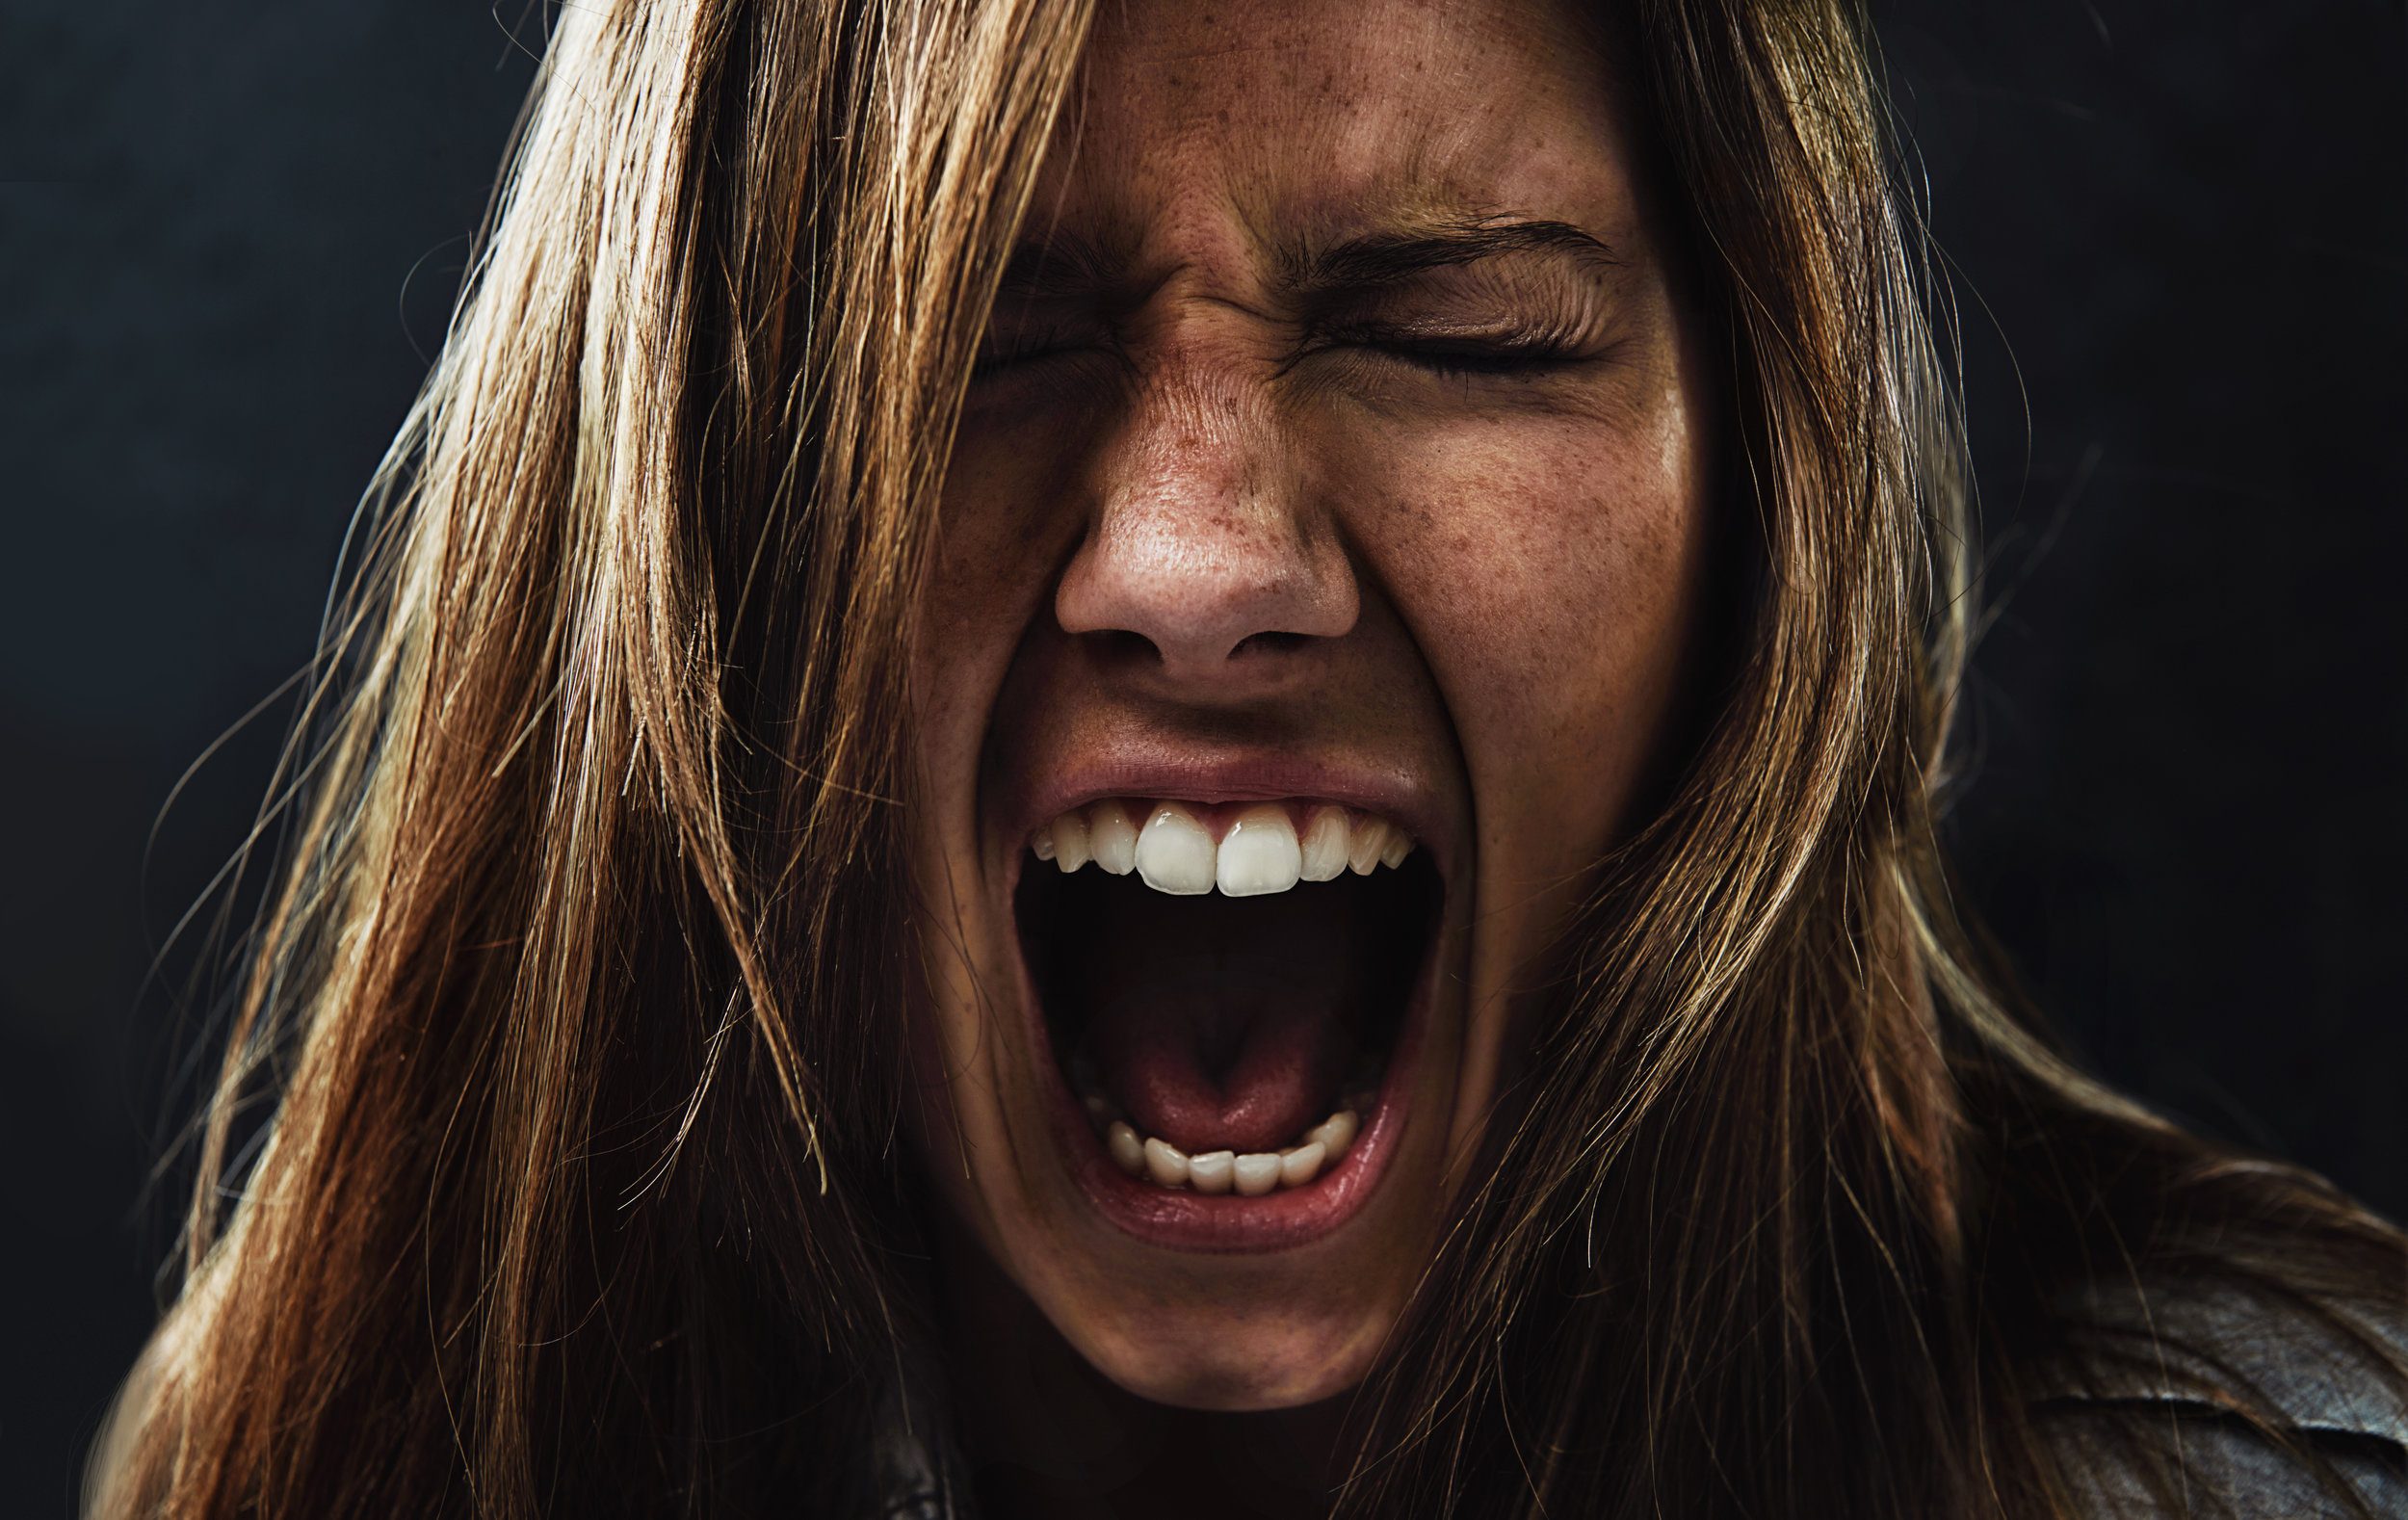 Time to get your anger under control? - A closer look at managing your anger